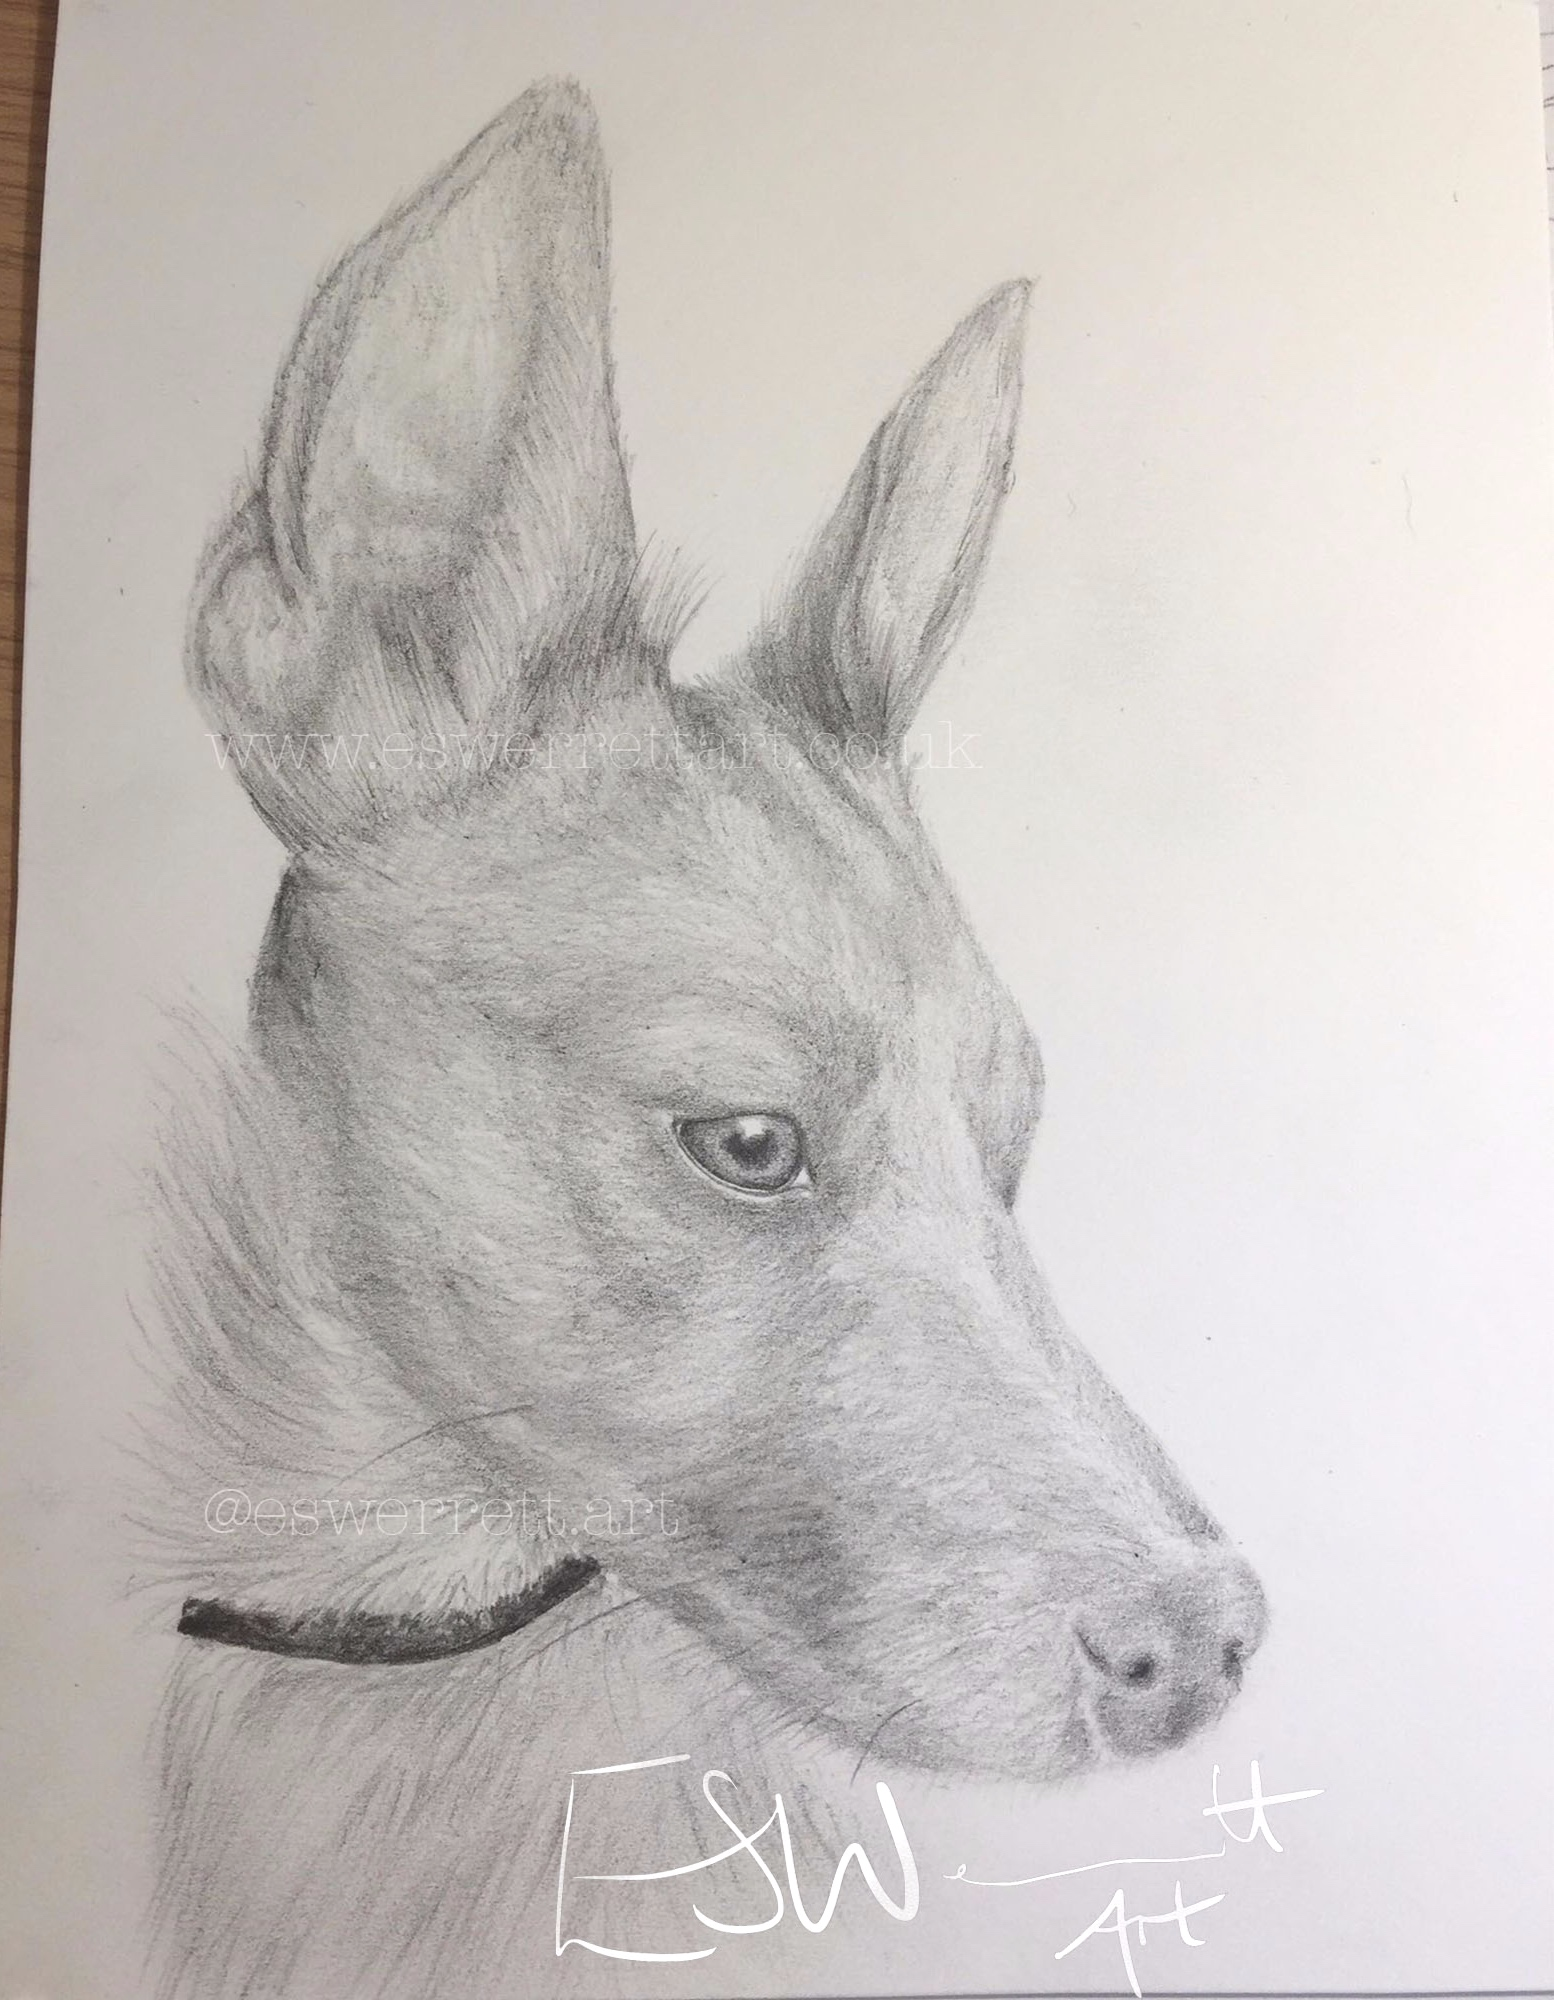 'Nutmeg' - 5 x 7 inches in Graphite Pencil